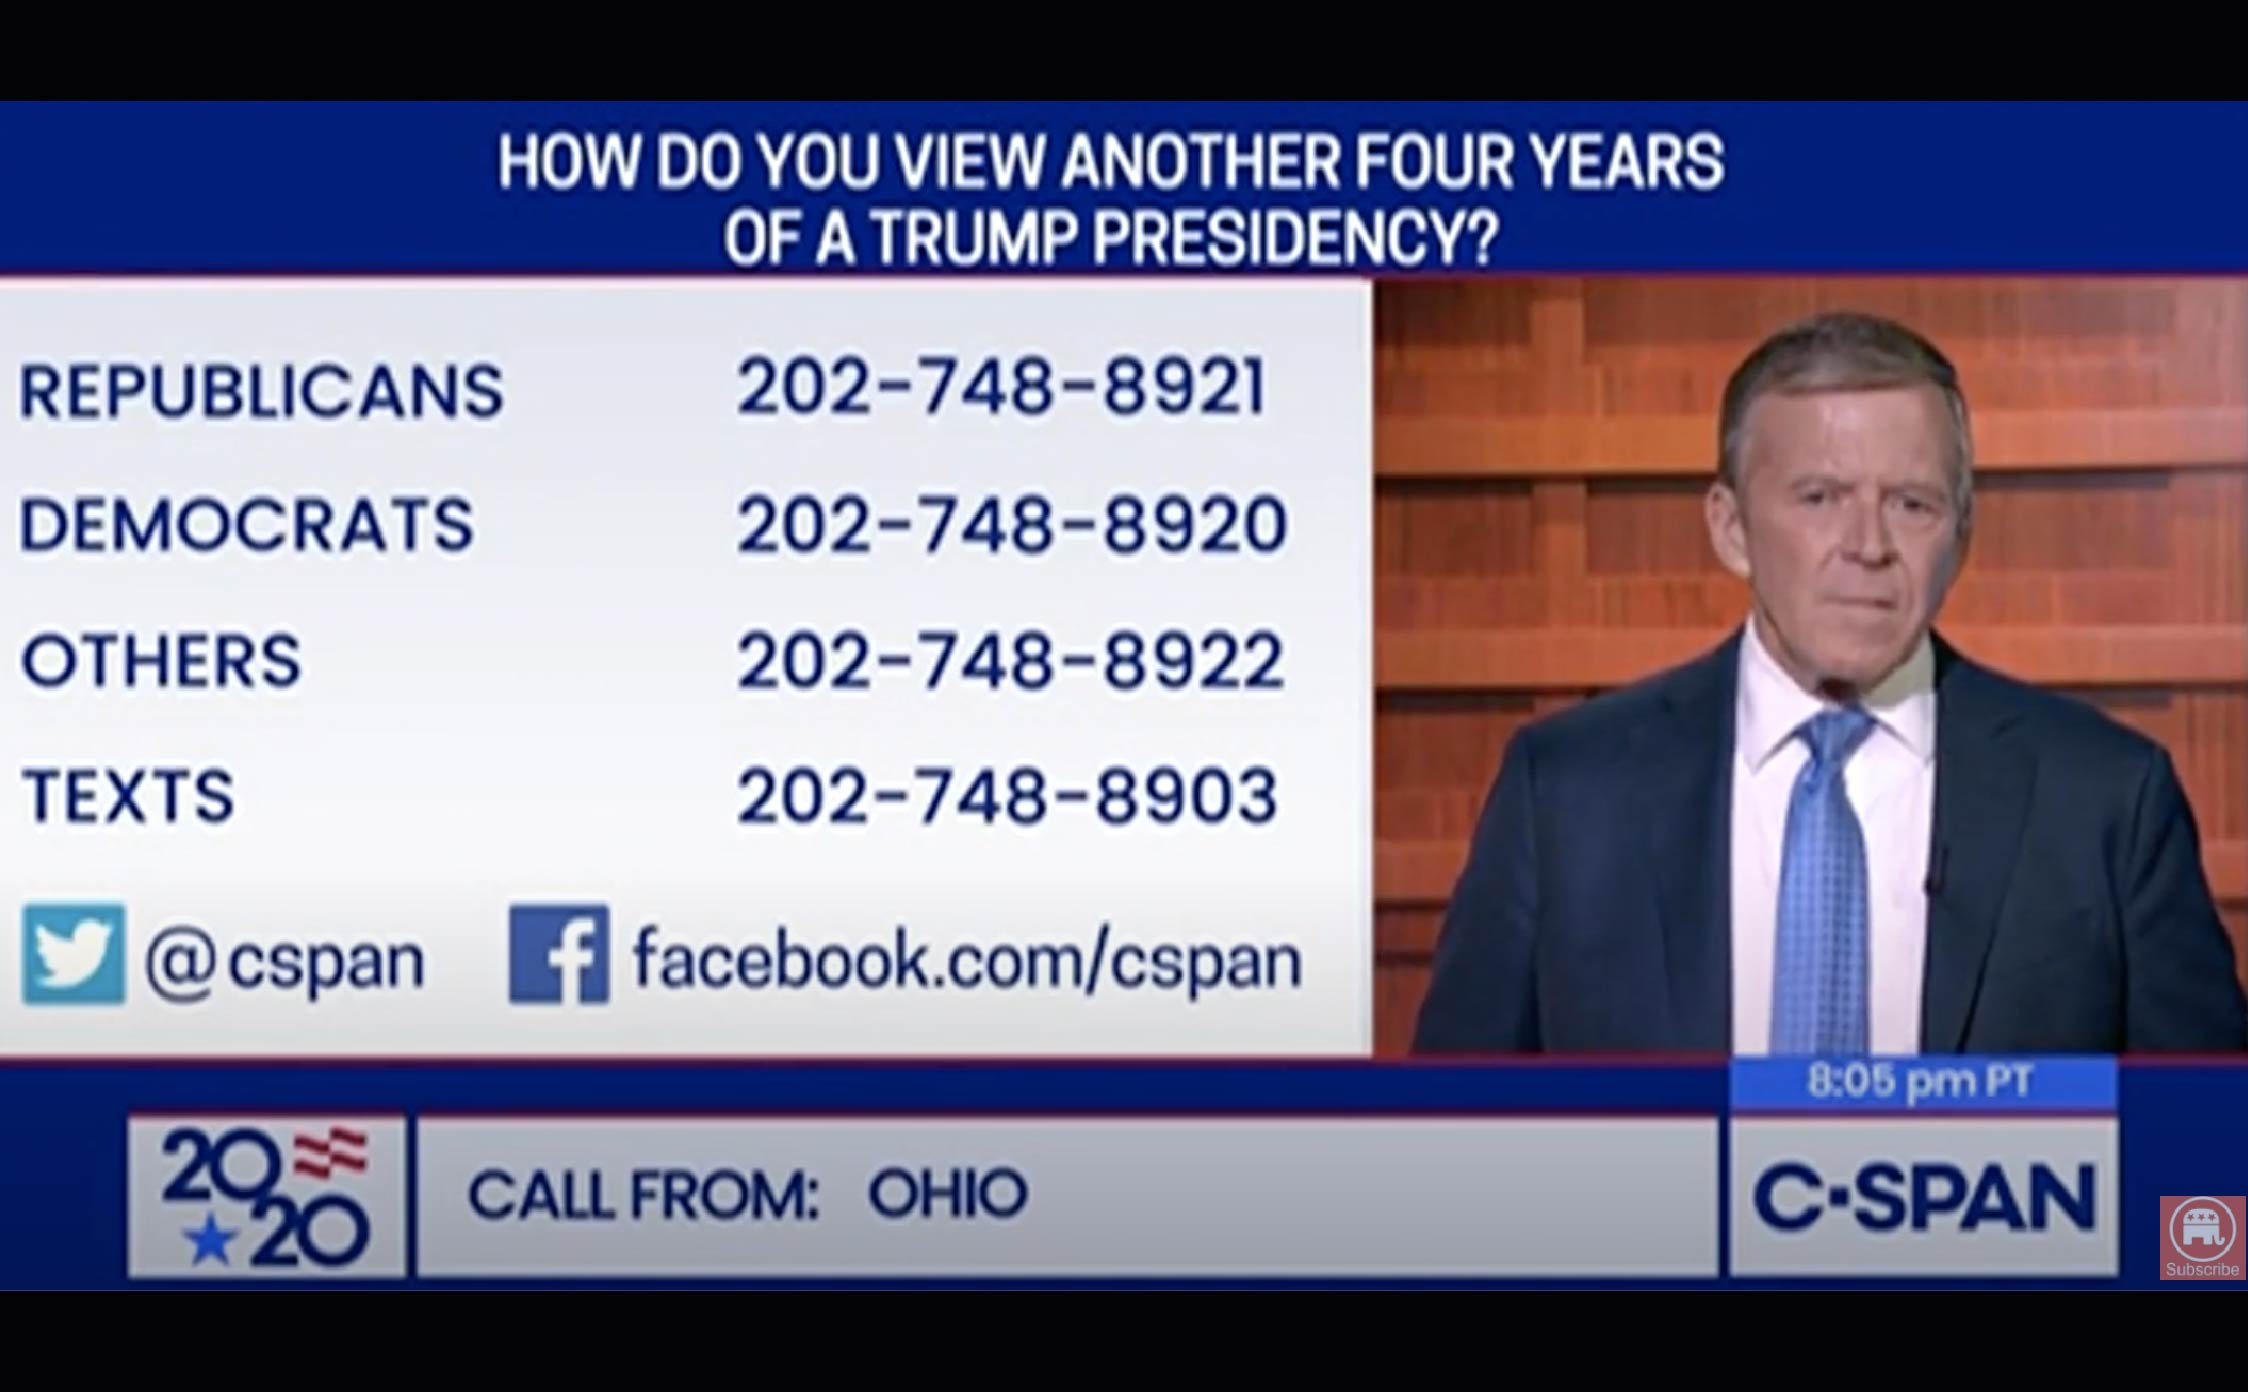 [VIDEO] Lifelong Dem Calls CSPAN After Watching RNC Convention, Says He's Now Voting Straight Republican Ticket in 2020